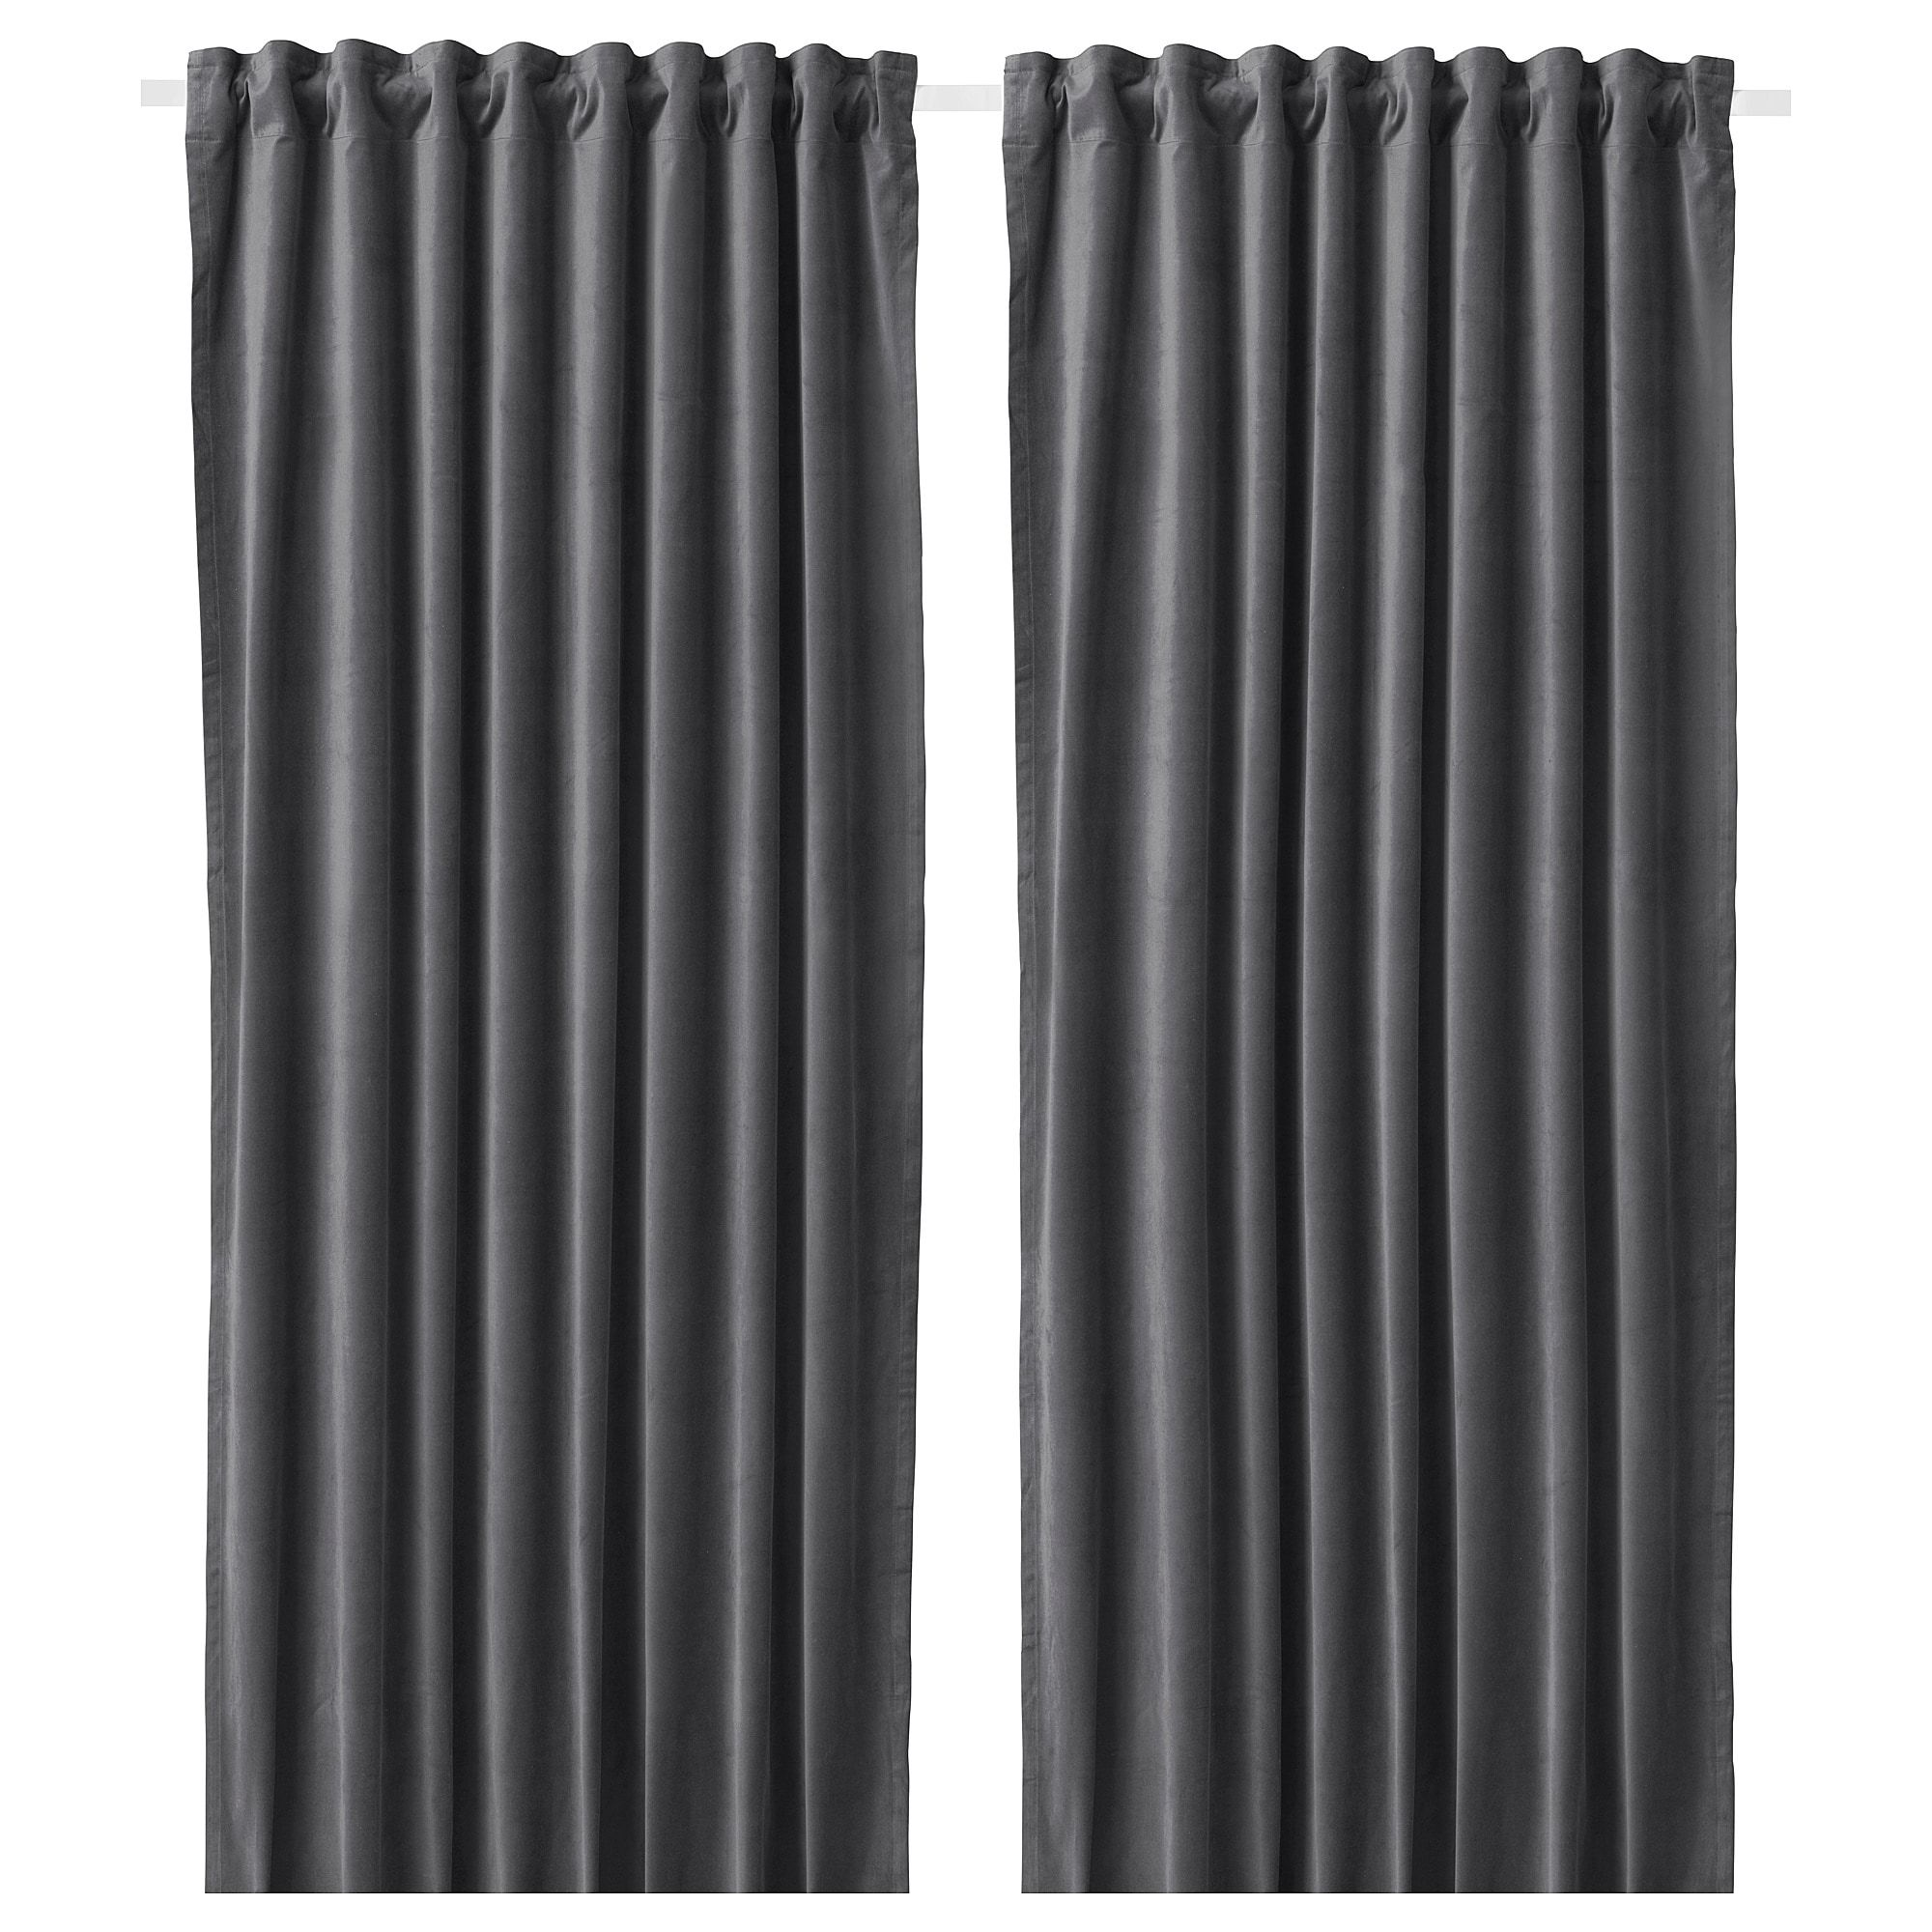 Sanela Room Darkening Curtains 1 Pair Dark Gray 55x98 Ikea